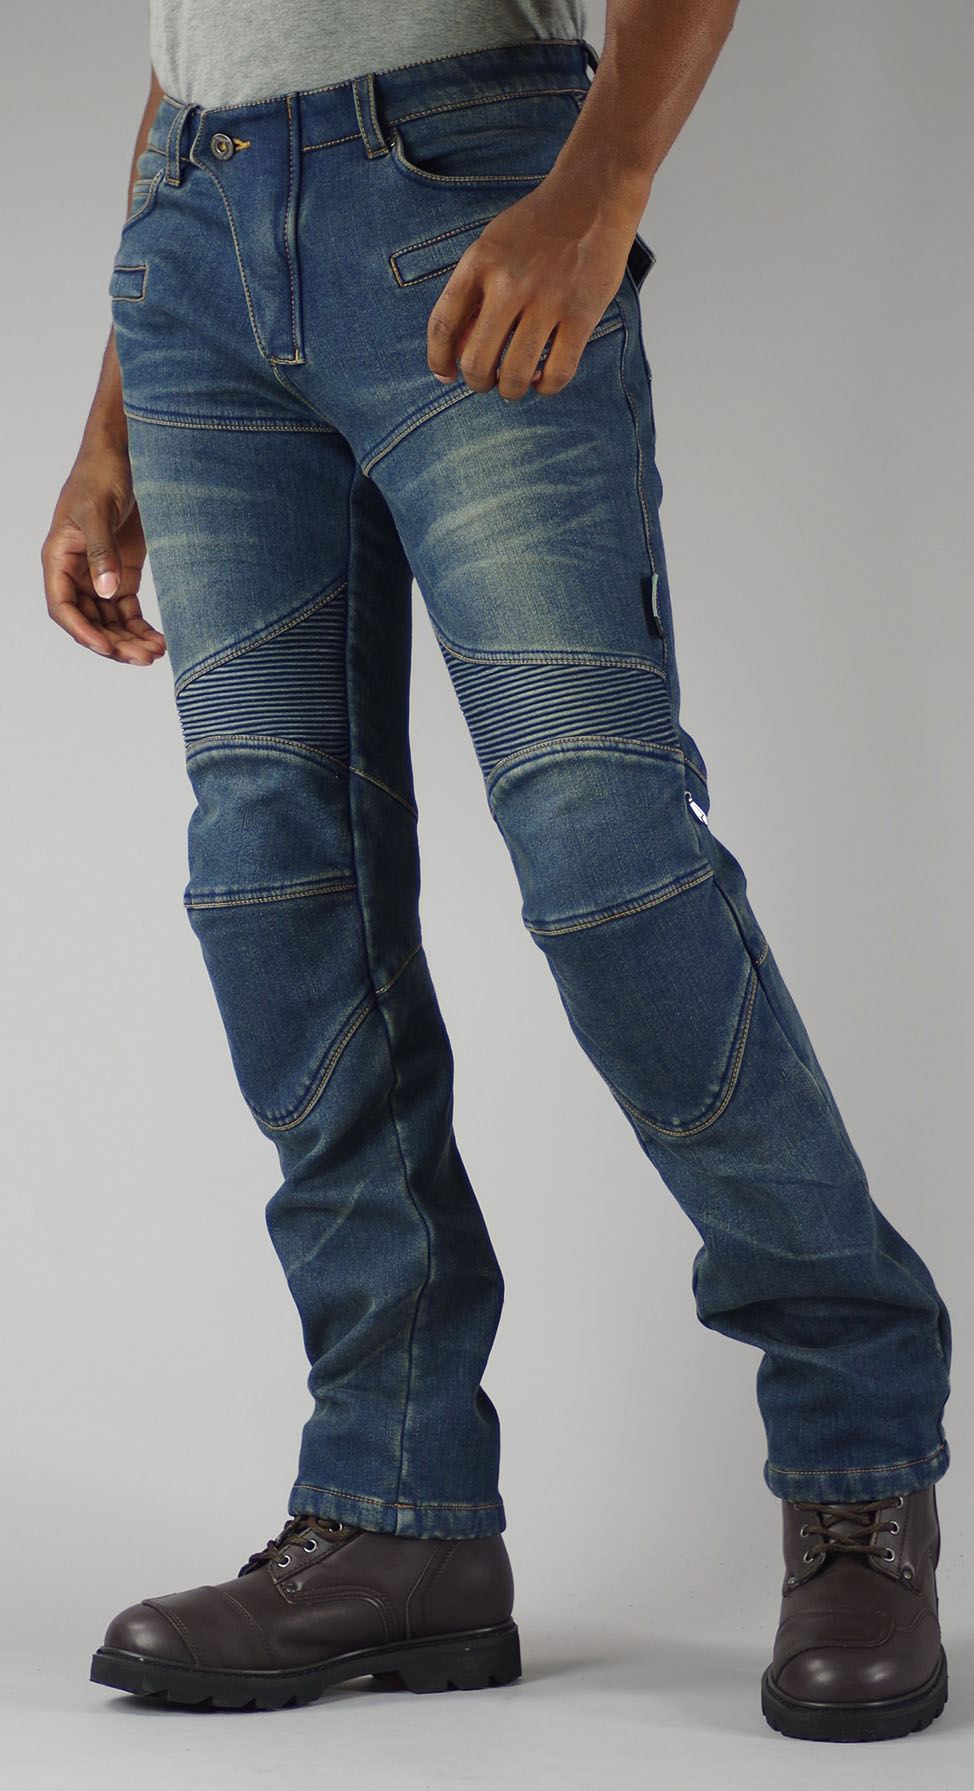 KOMINE WJ-921S Super Fit Warm Denim Jeans Dames